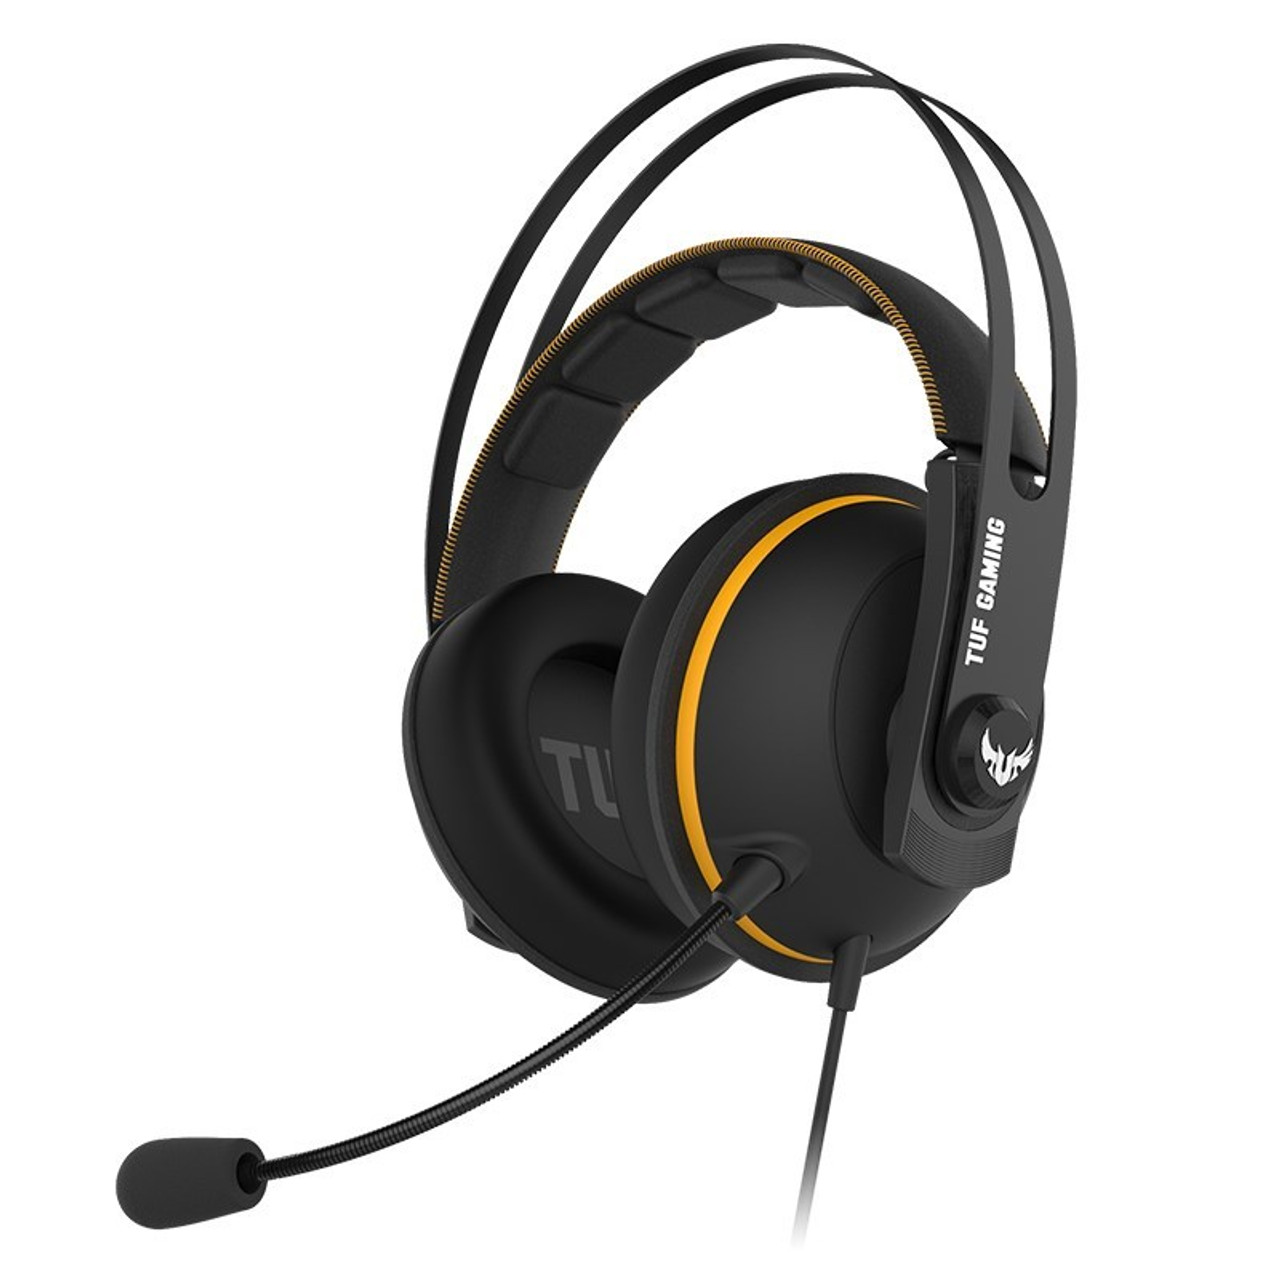 Image for Asus TUF Gaming H7 Virtual 7.1 USB Gaming Headset - Yellow CX Computer Superstore